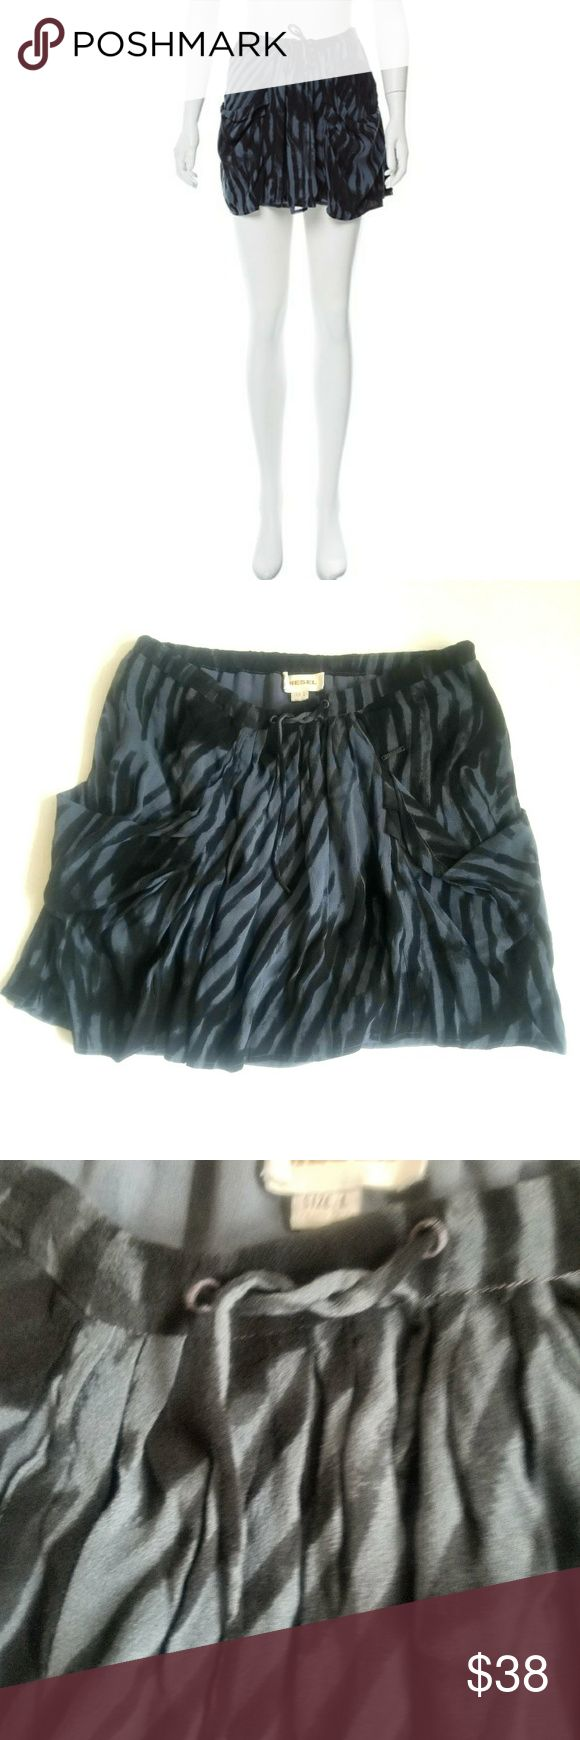 """💞💞DIESEL SLATE CREP MINI SKIRT 💞💞 Slate and black Diesel mini skirt with graphic print throughout, dual pockets and drawstring at waistband. Pre loved in excellent condition.  No snags holes or stains. Size large ... Fabric:100% Rayon...14"""" long. Diesel Skirts Mini"""